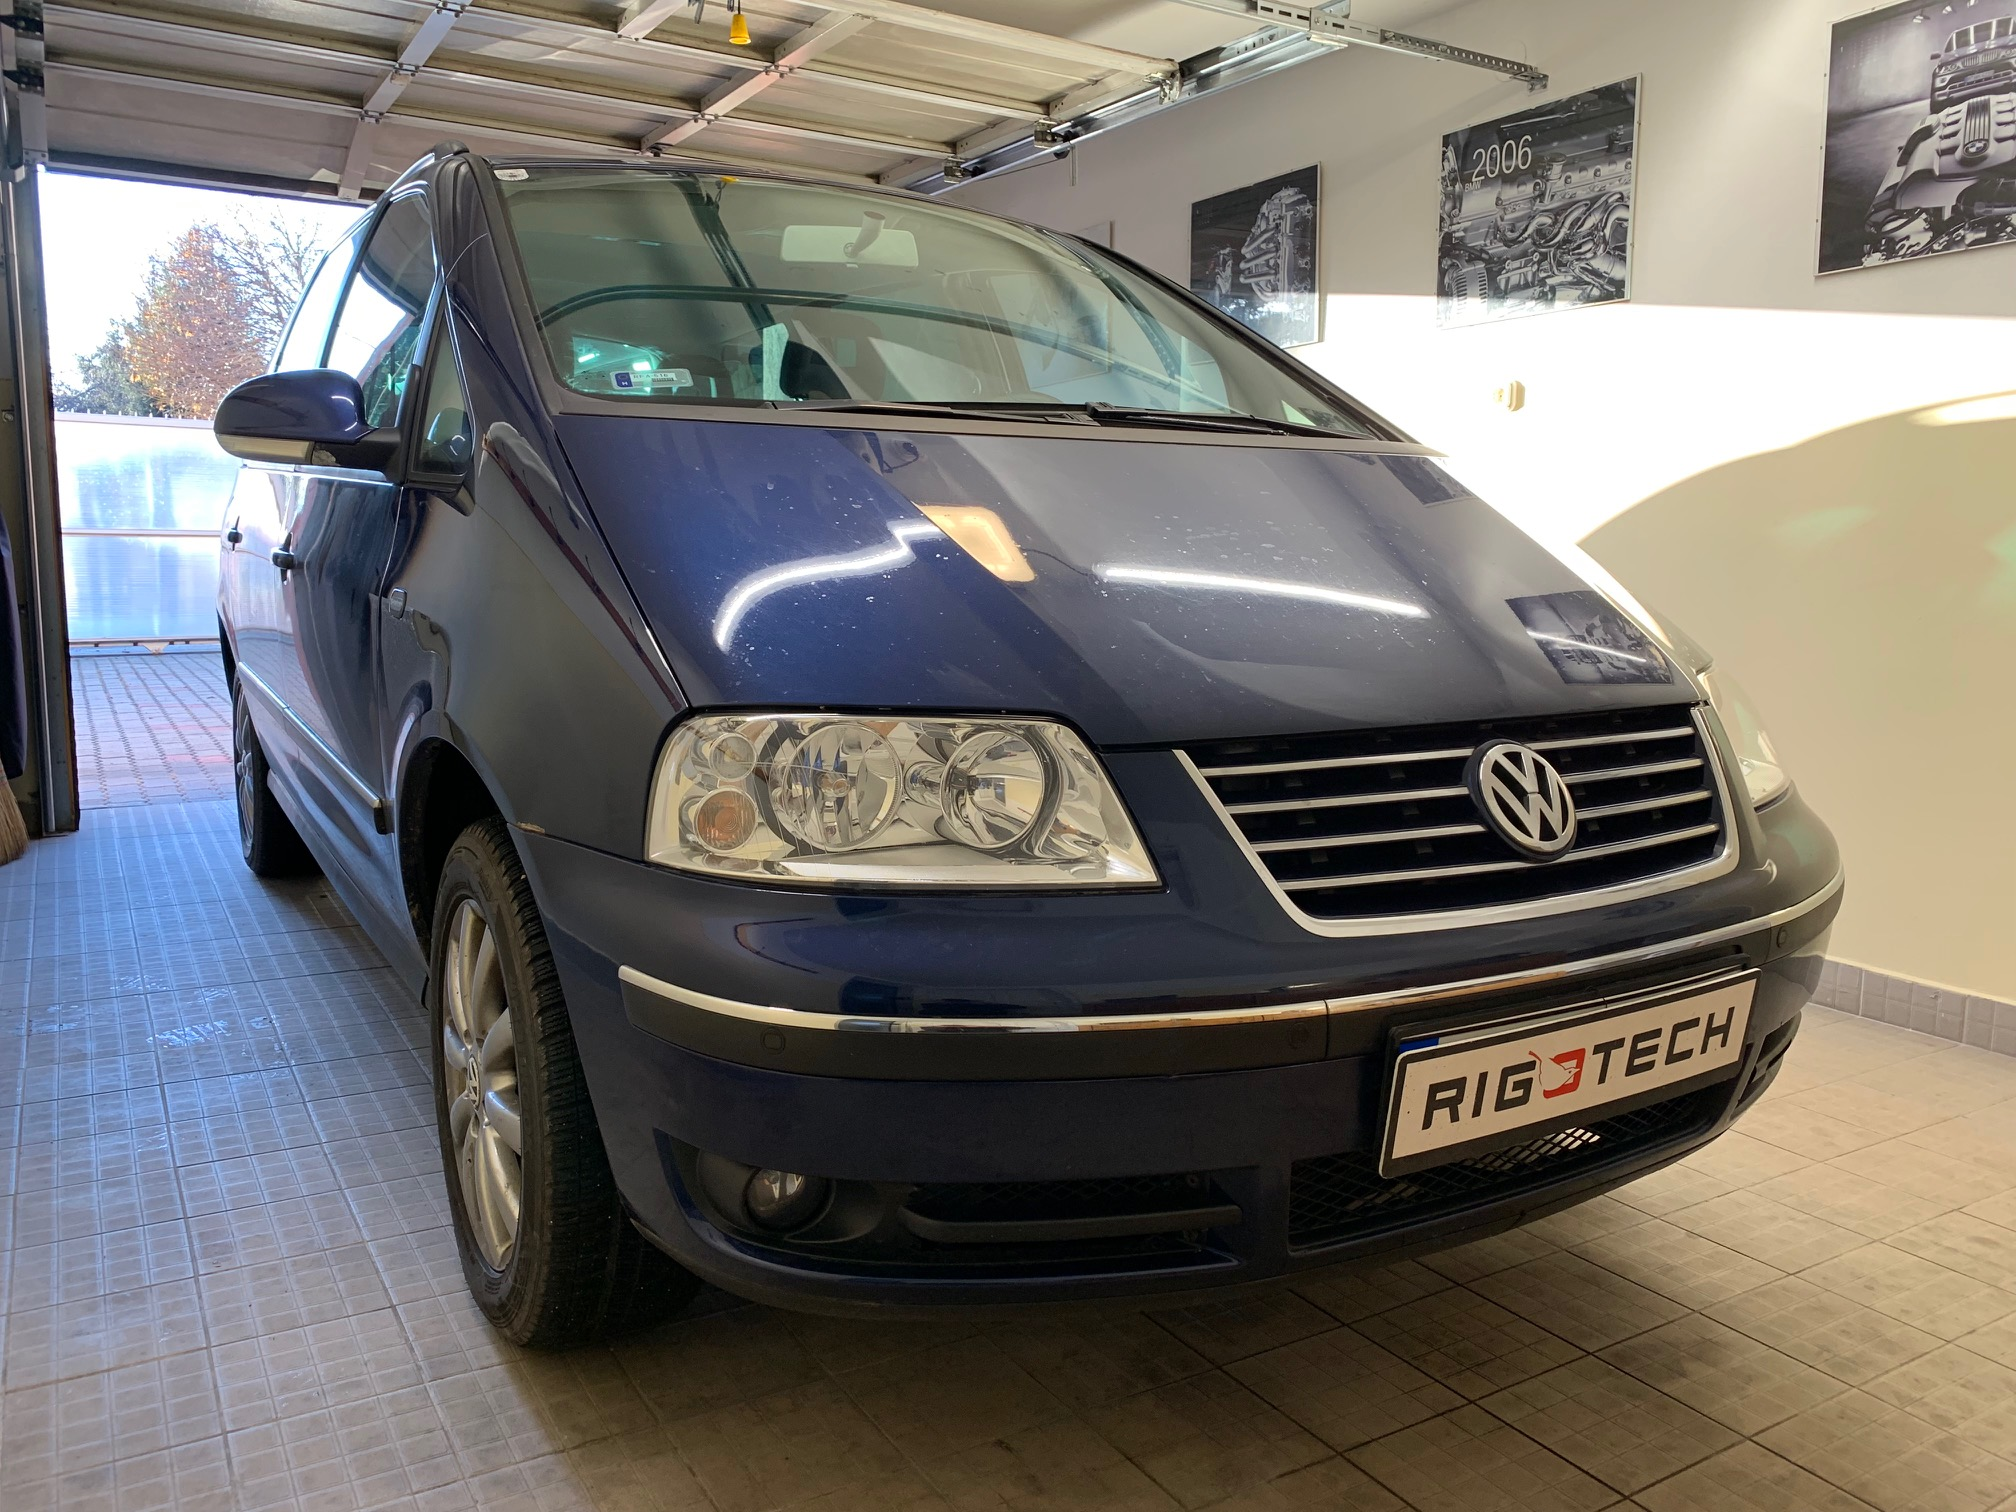 Vw-Sharan-19tdi-115Le-Chiptuning